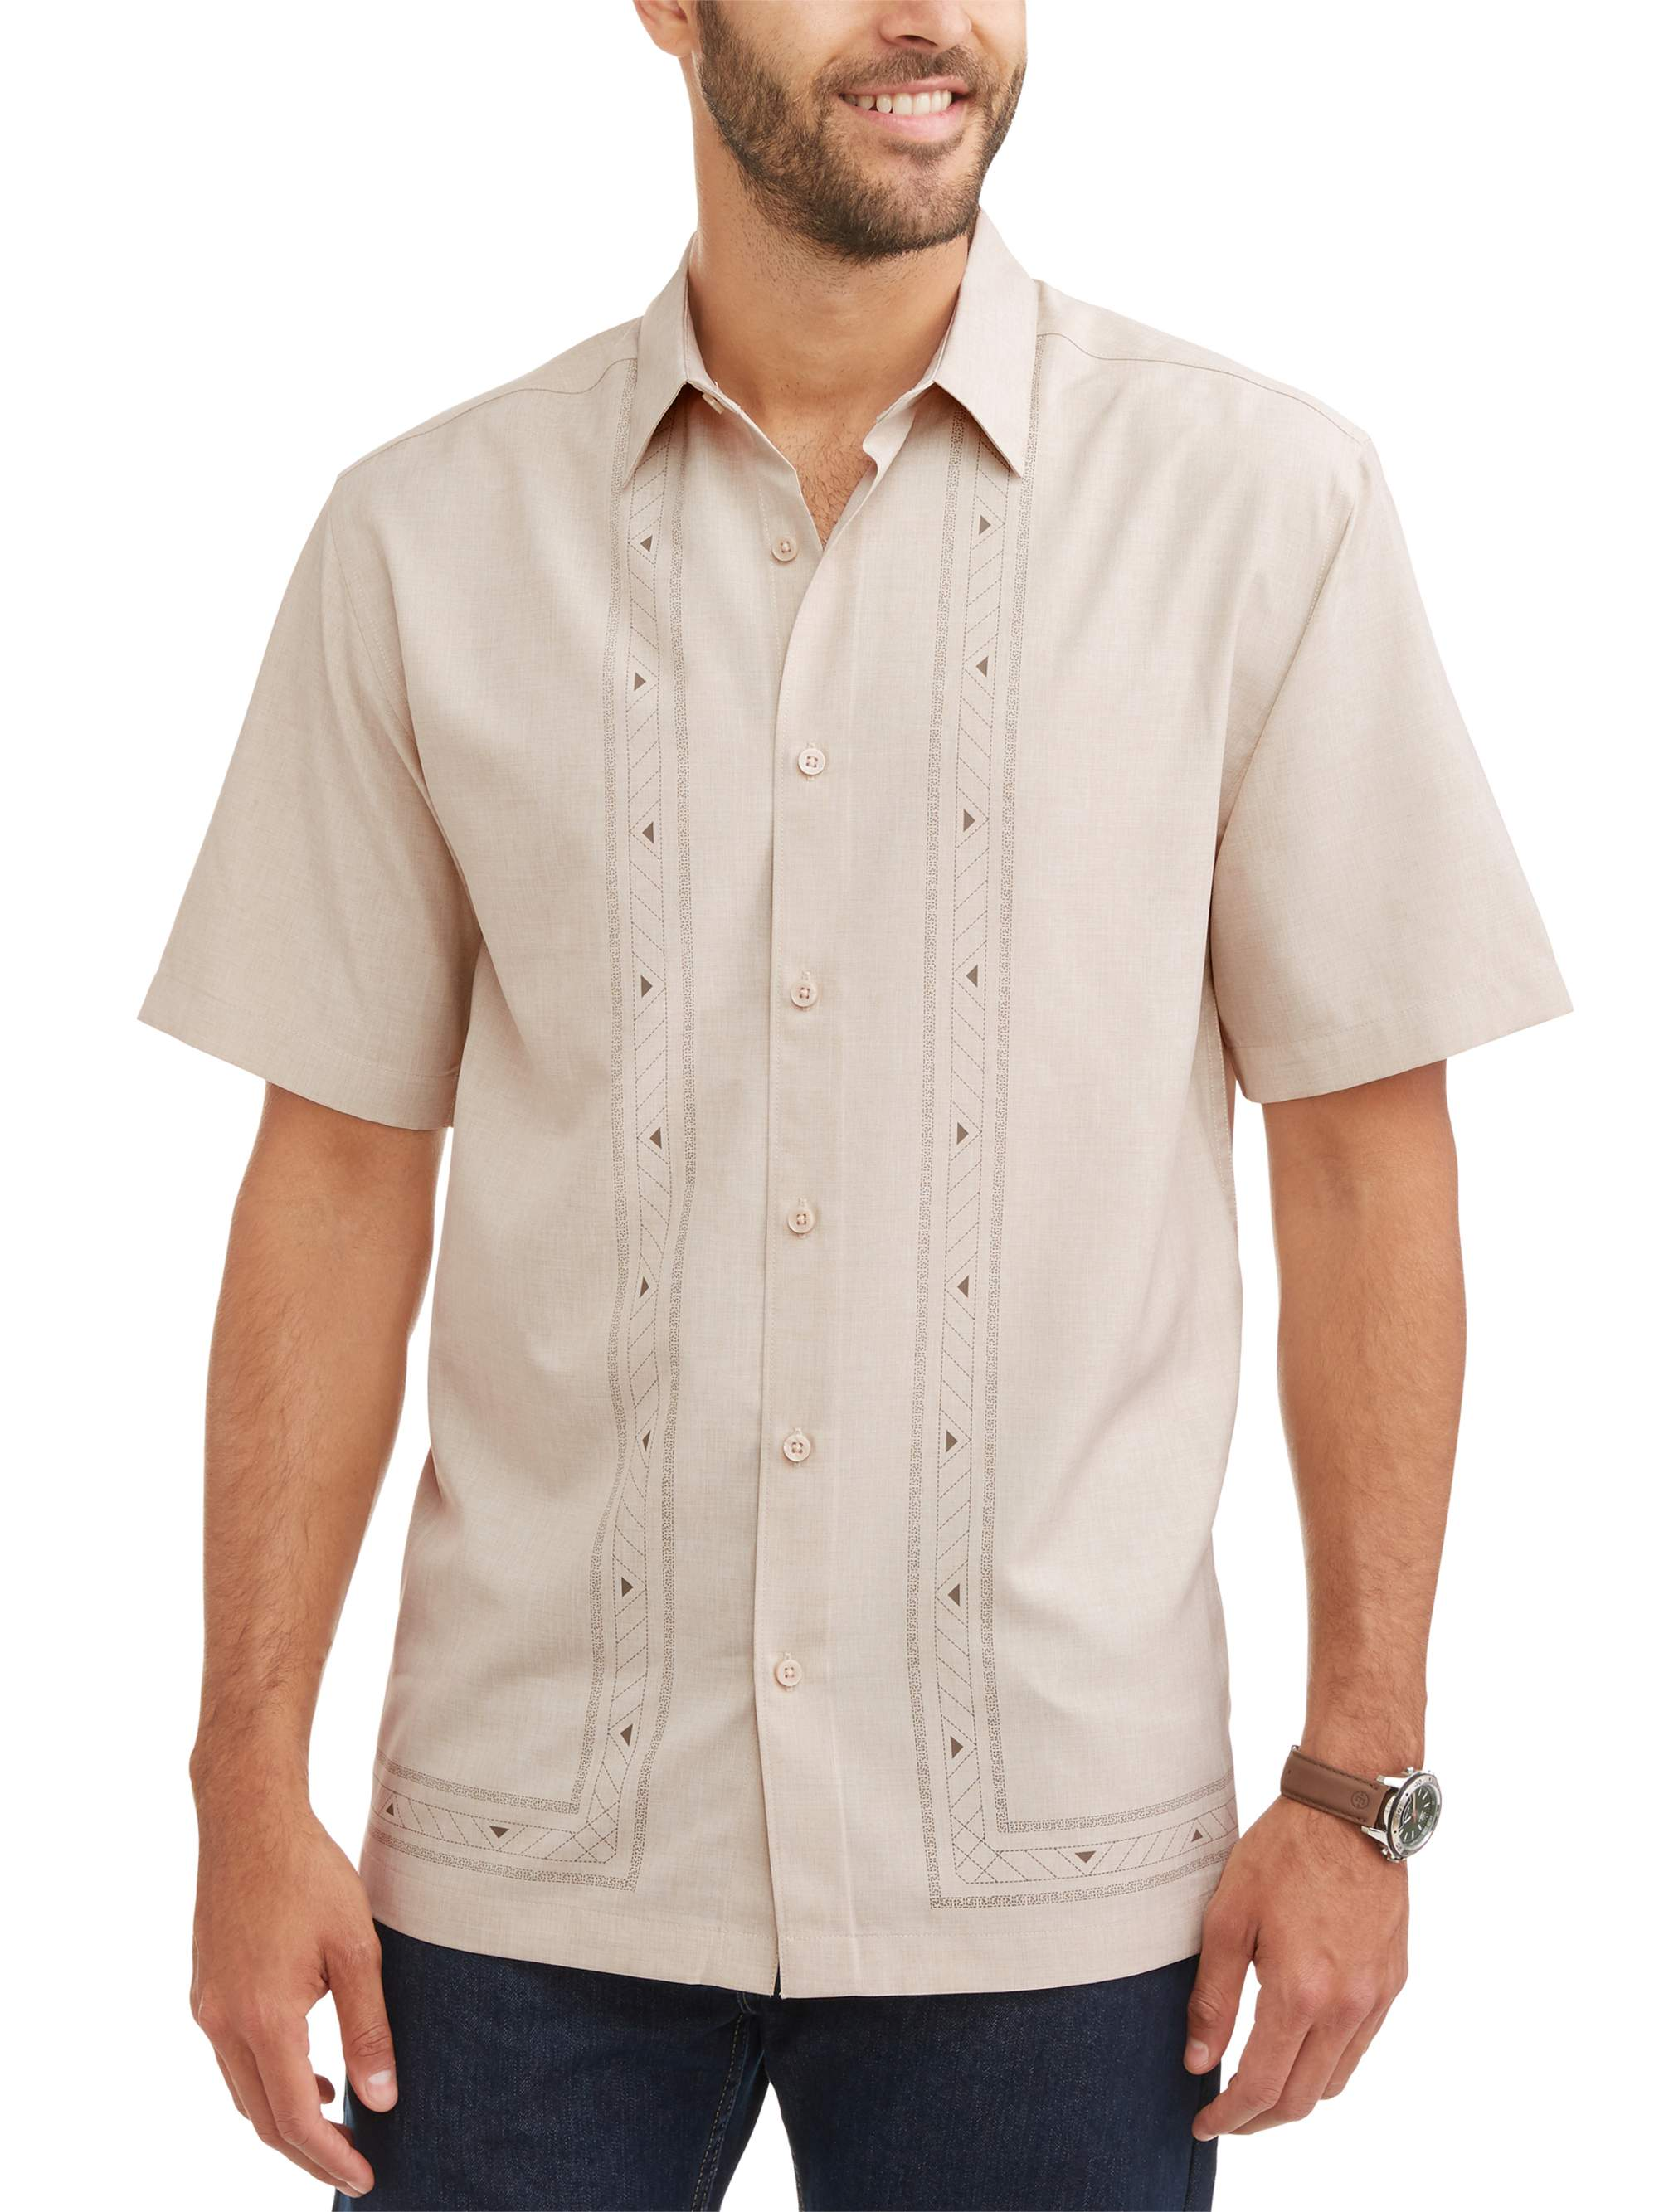 Men's Short Sleeve L Shape Panel Woven Shirt